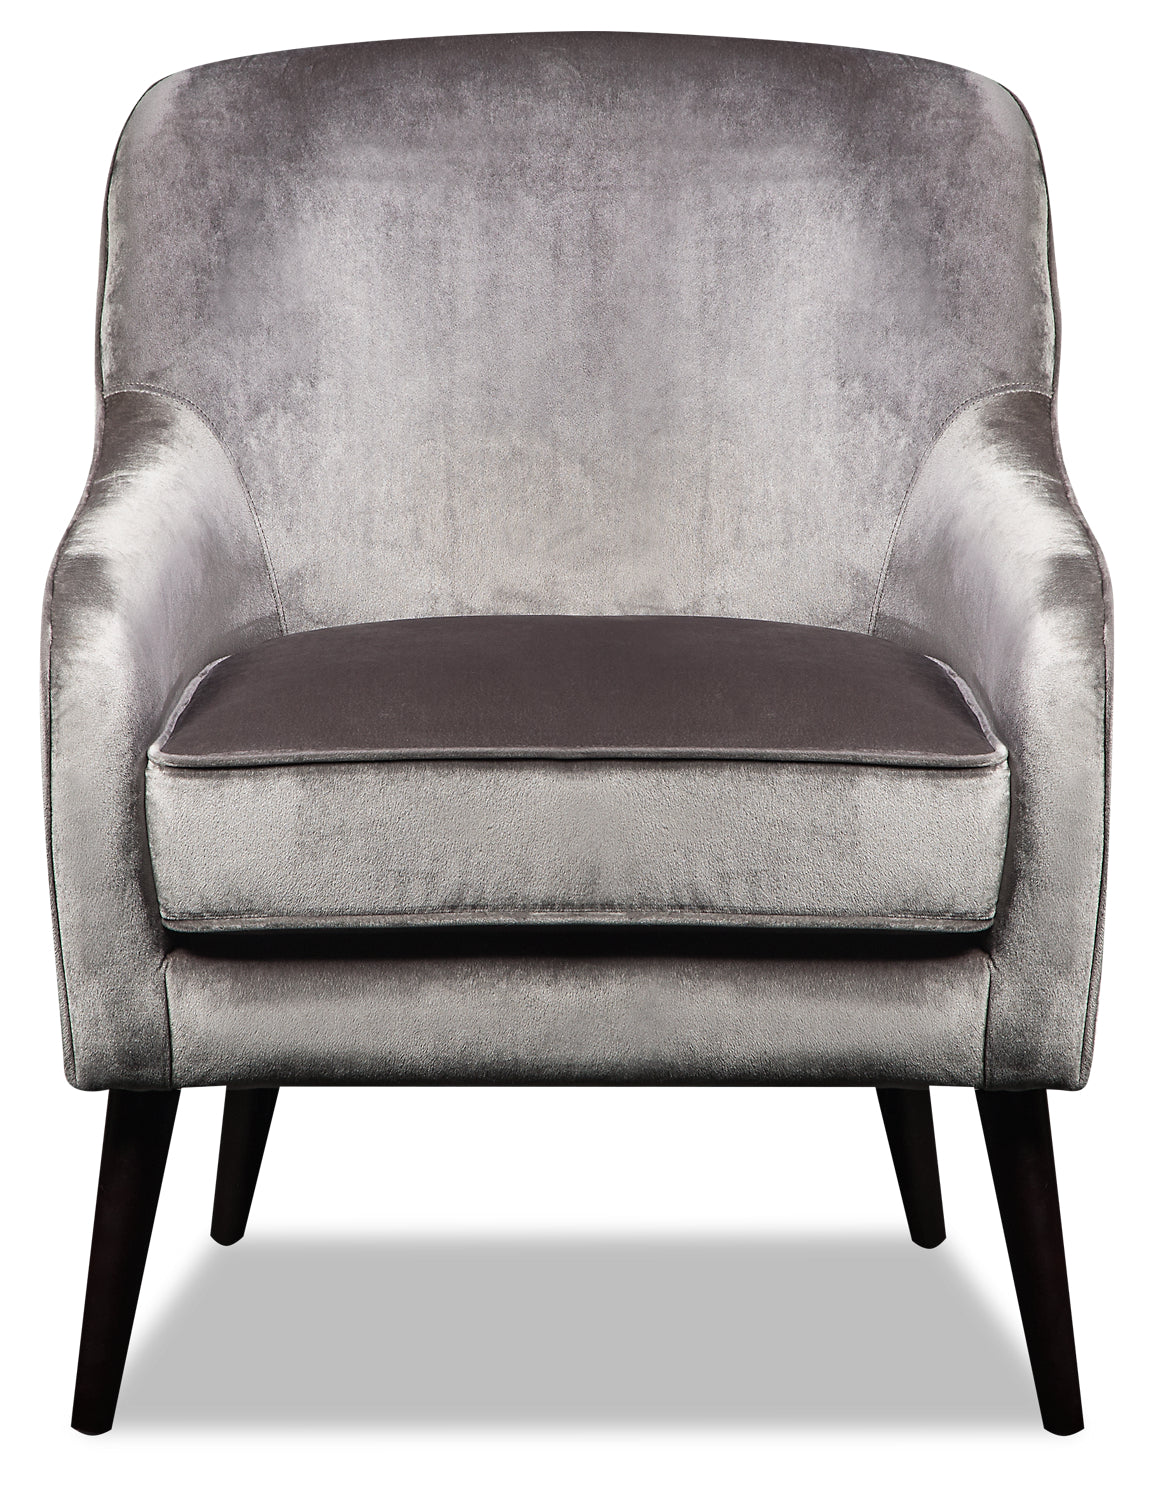 Awesome Zelda Velvet Accent Chair Grey Caraccident5 Cool Chair Designs And Ideas Caraccident5Info